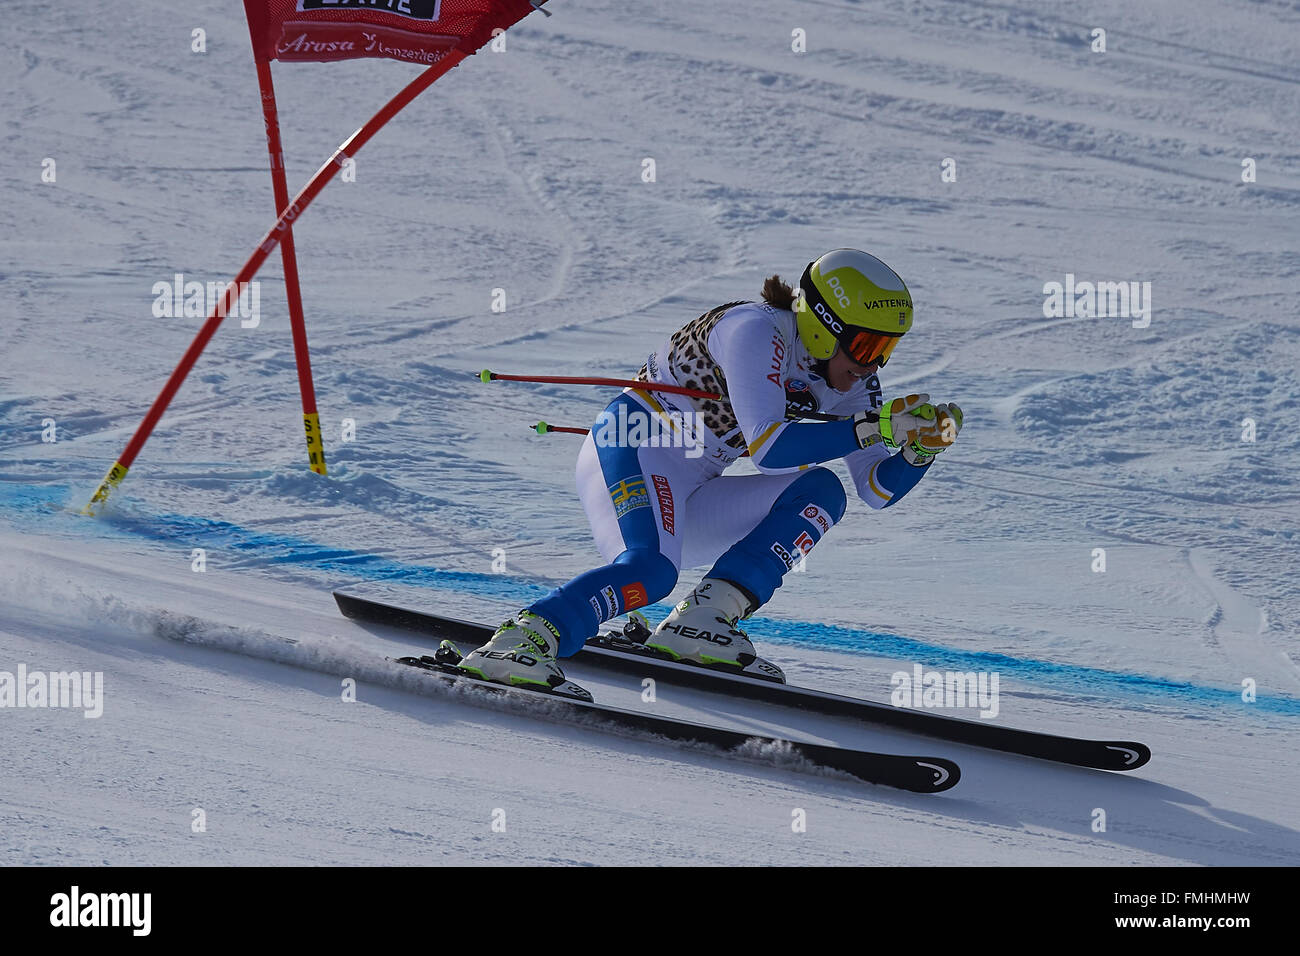 Lenzerheide, Switzerland. 12th March, 2016. Kajsa Kling (SWE) during her run in the Ladies' Super G at the Audi - Stock Image